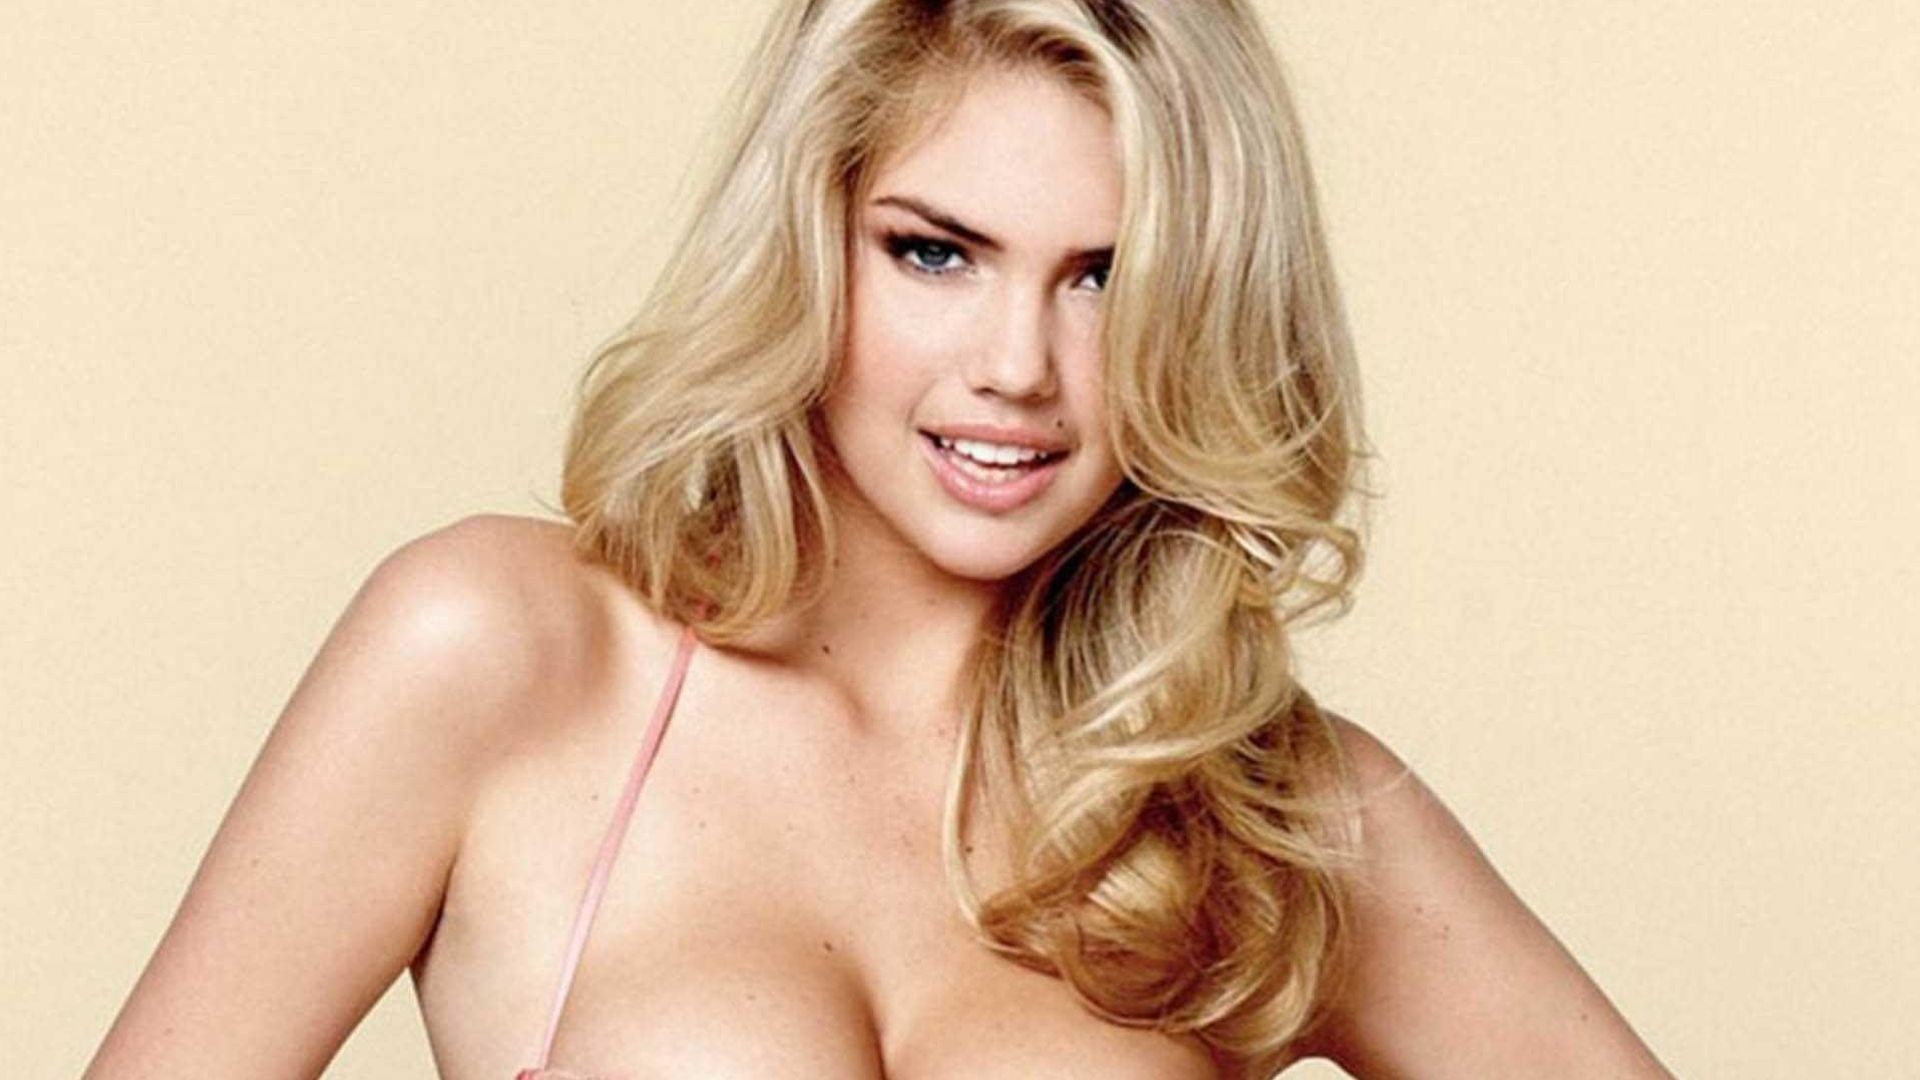 Kate Upton Wallpaper 1920x1080 78 Pictures